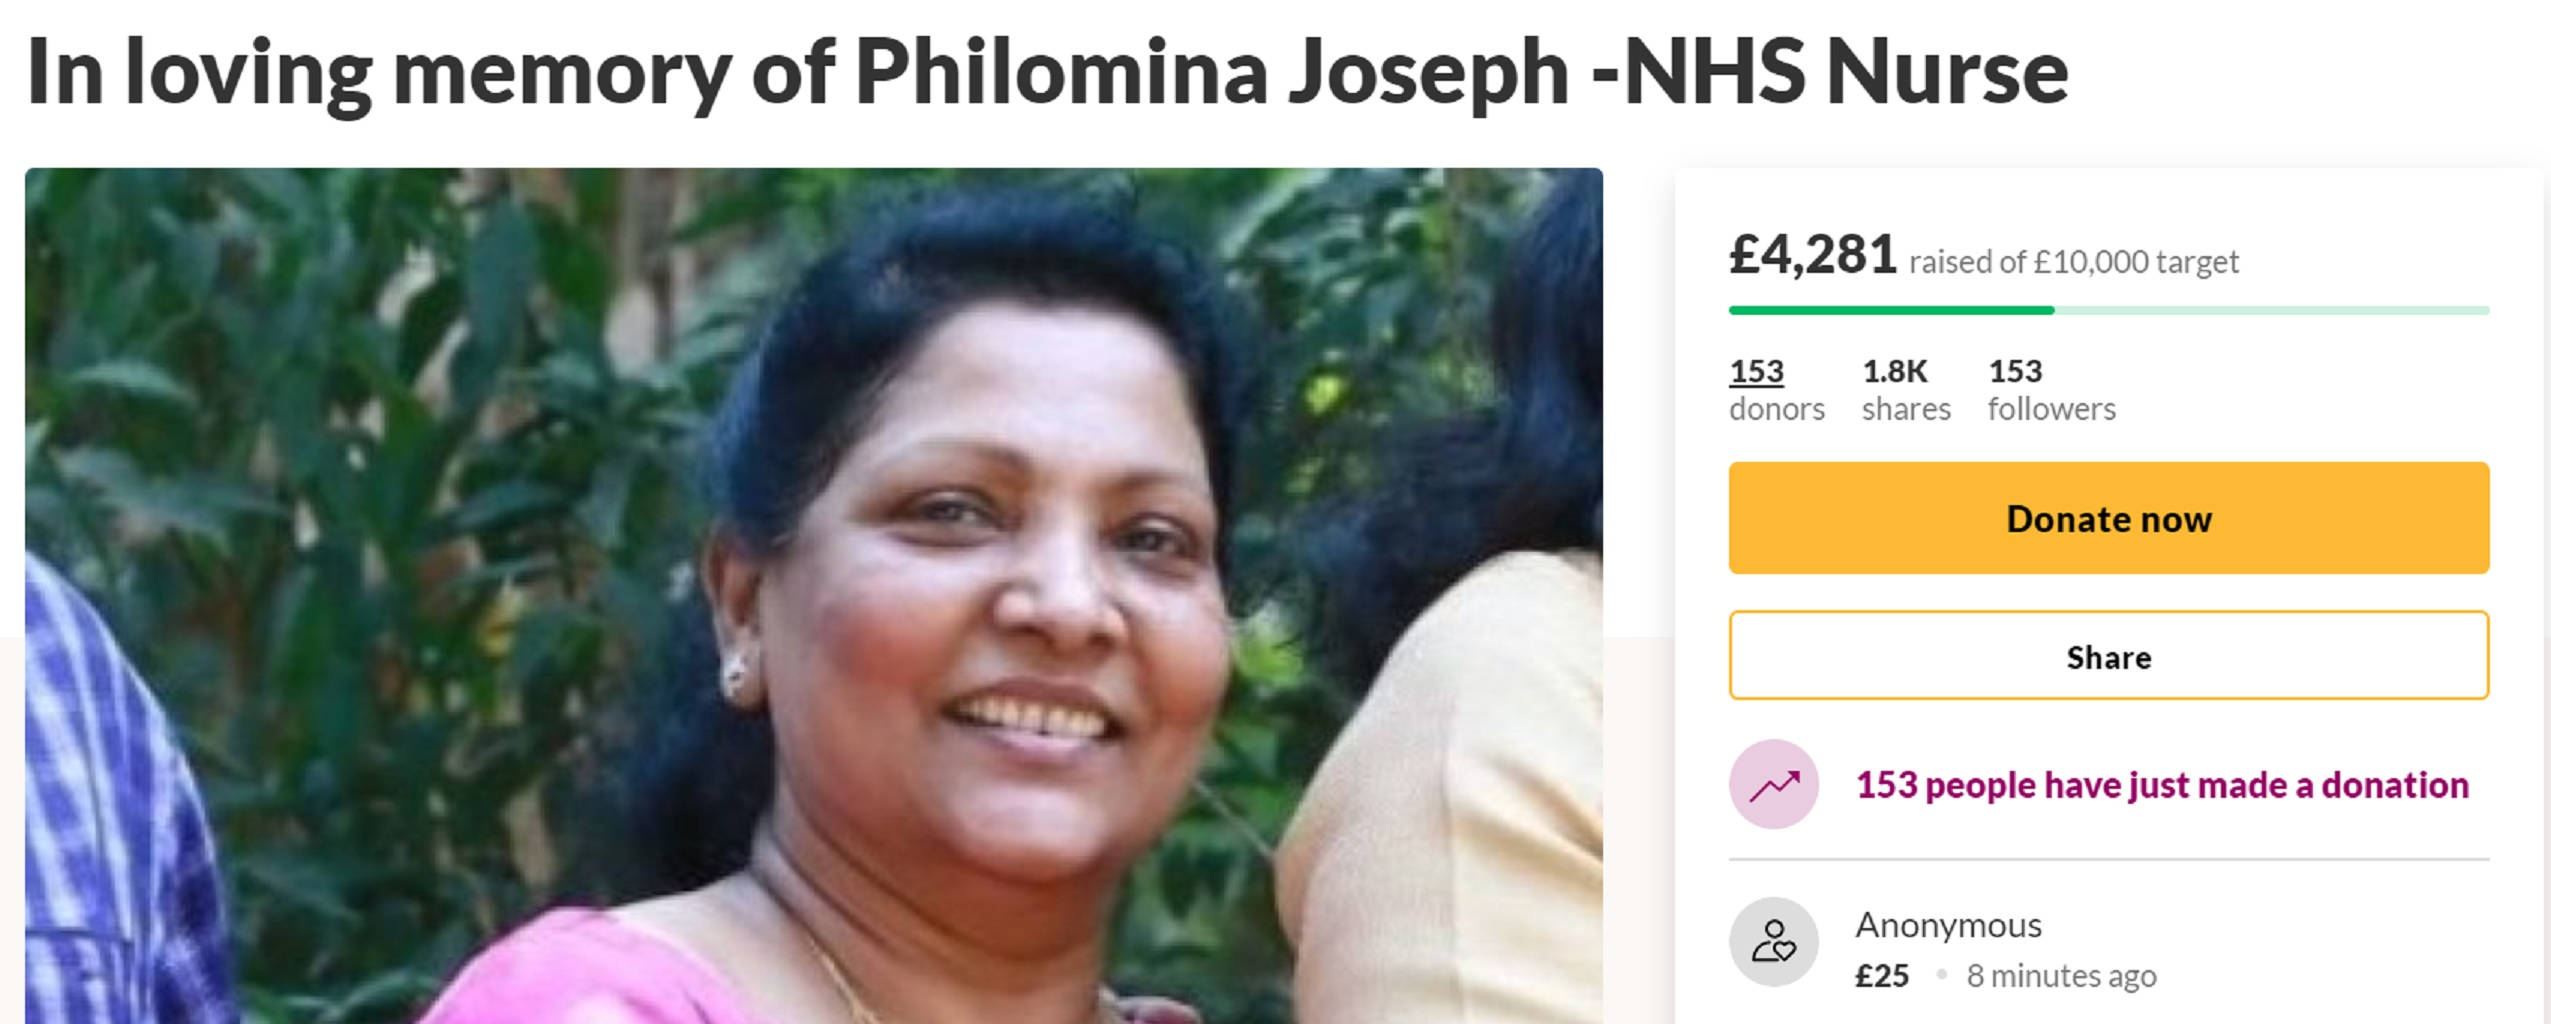 The GoFundMe page set up to help pay for the memorial of Philomina Cherian